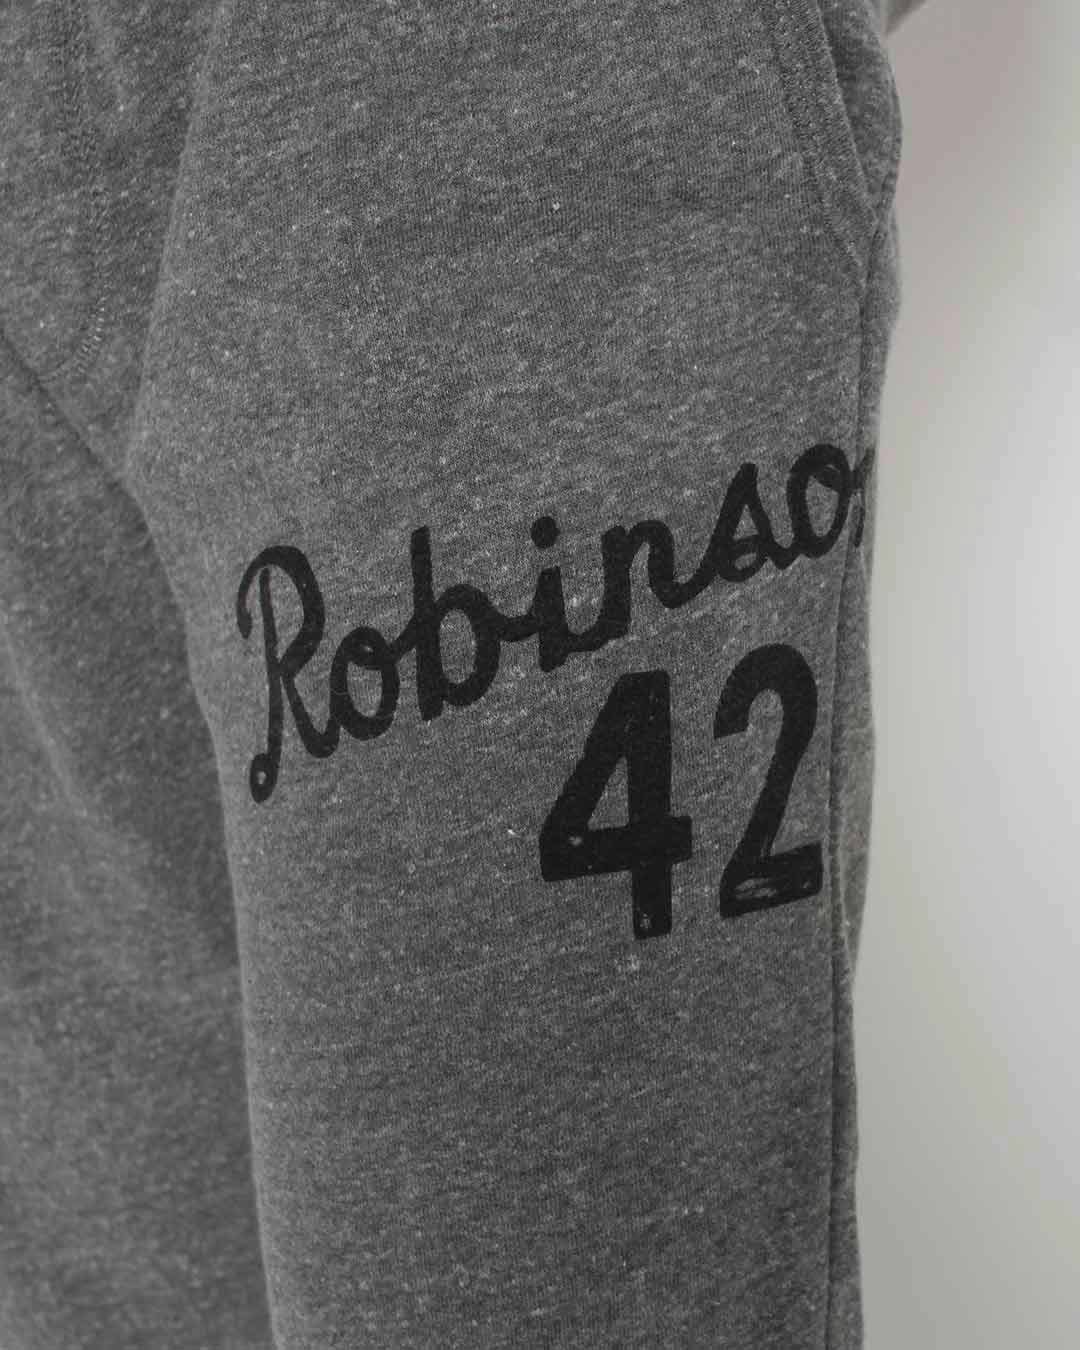 BHT - Jackie Robinson #42 Sweatpants - Roots of Inc dba Roots of Fight